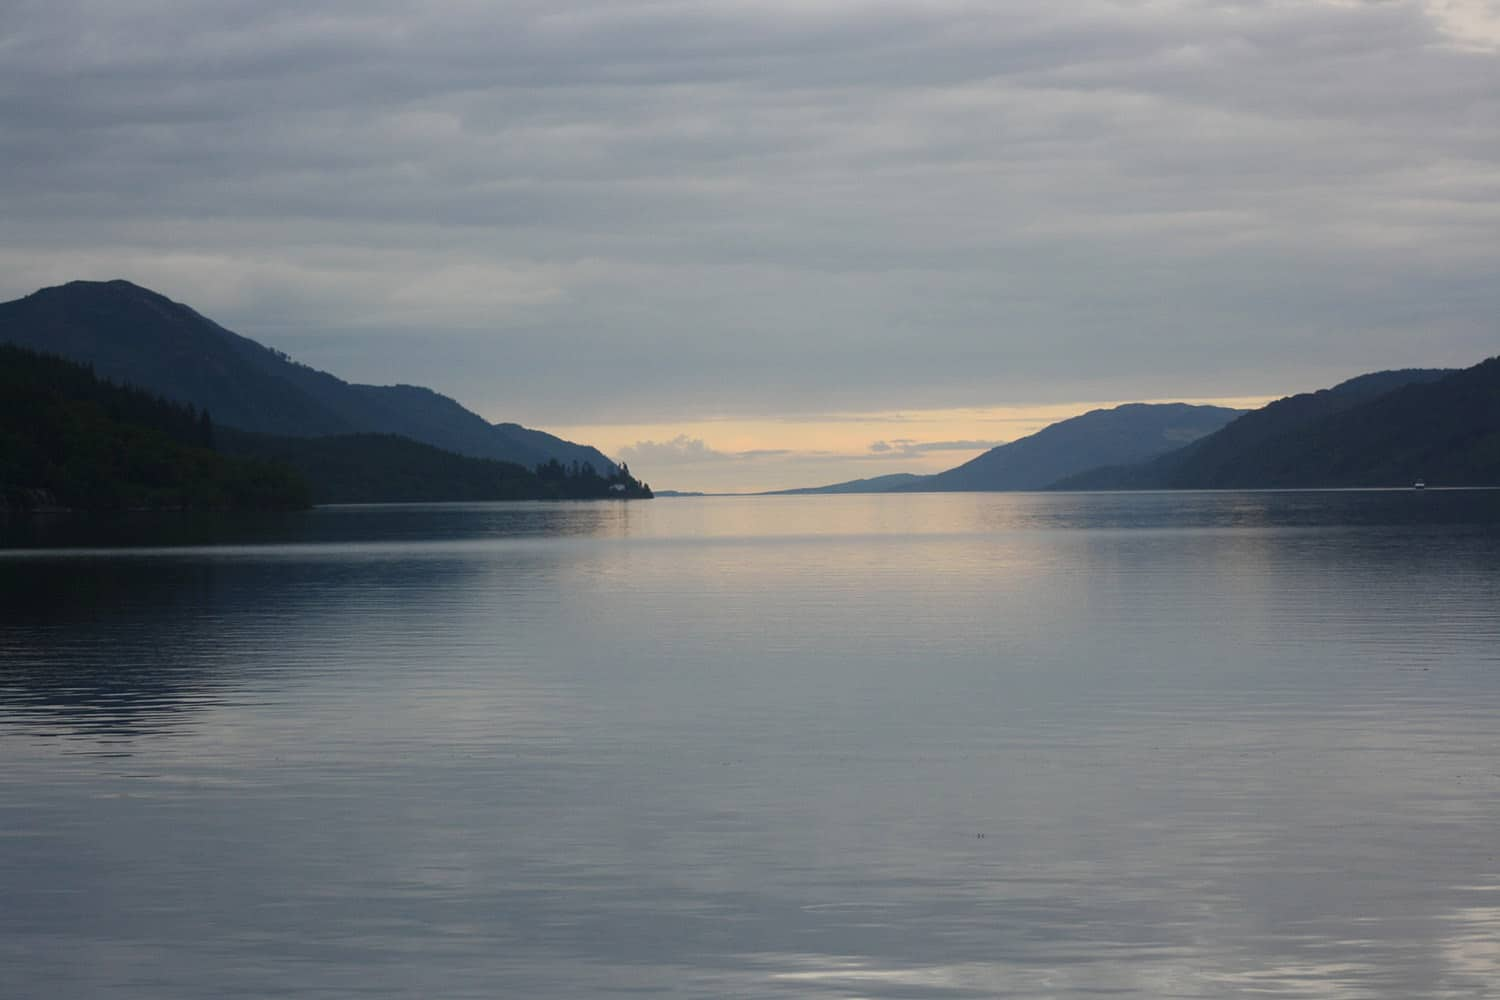 Loch Ness, home of the Nessie the Loch Ness Monster is a highlight of our Loch Ness Monster tour